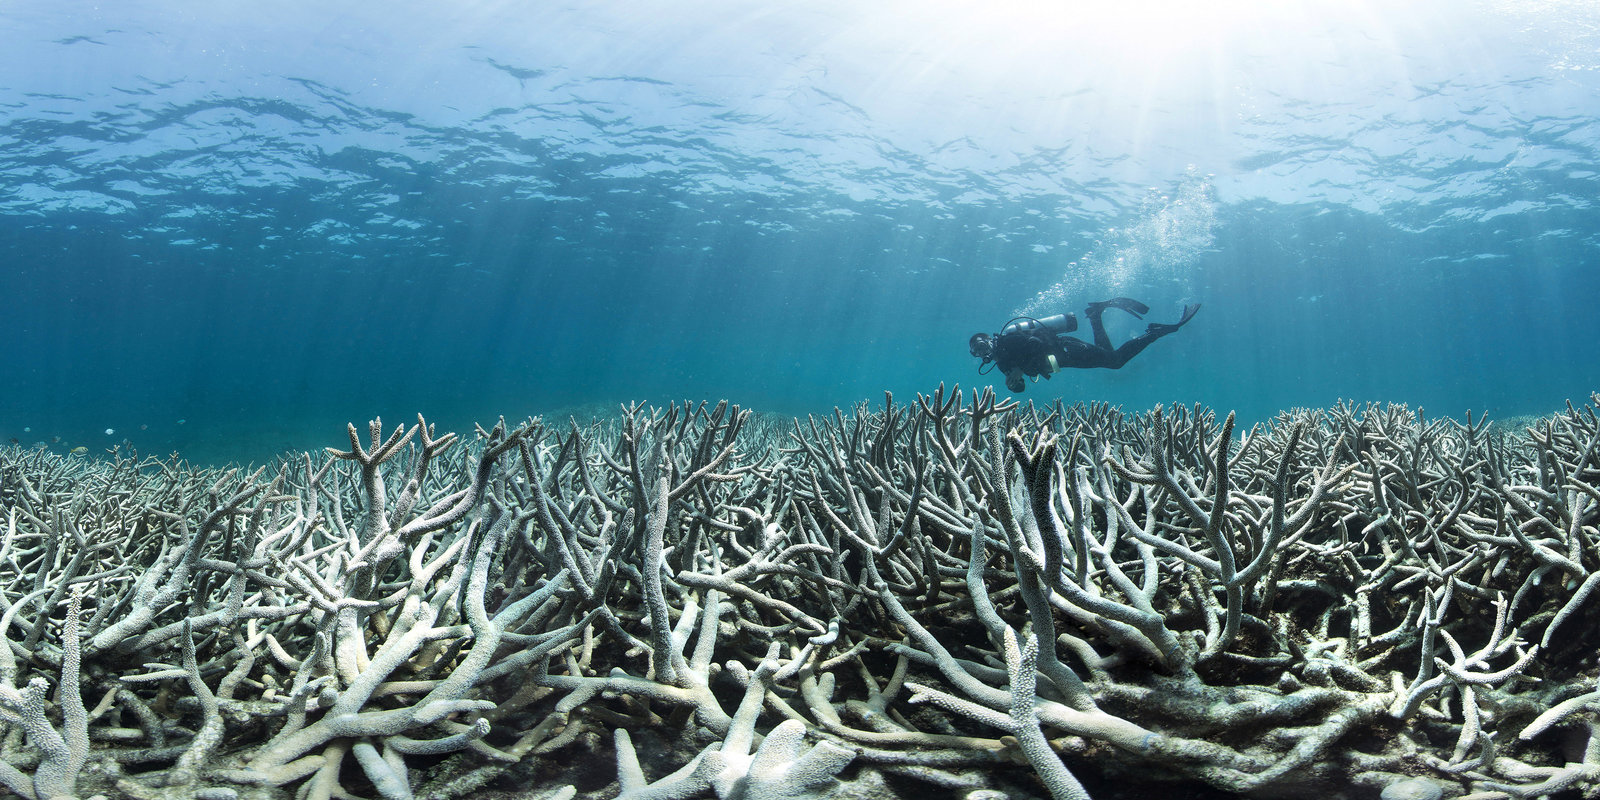 Our Oceans - Our oceans absorb about half of the carbon dioxide from the atmosphere. The more carbon dioxide they absorb the more acidic they become. Acidic oceans cause major ecosystem disruptions and our fisheries are greatly affected.